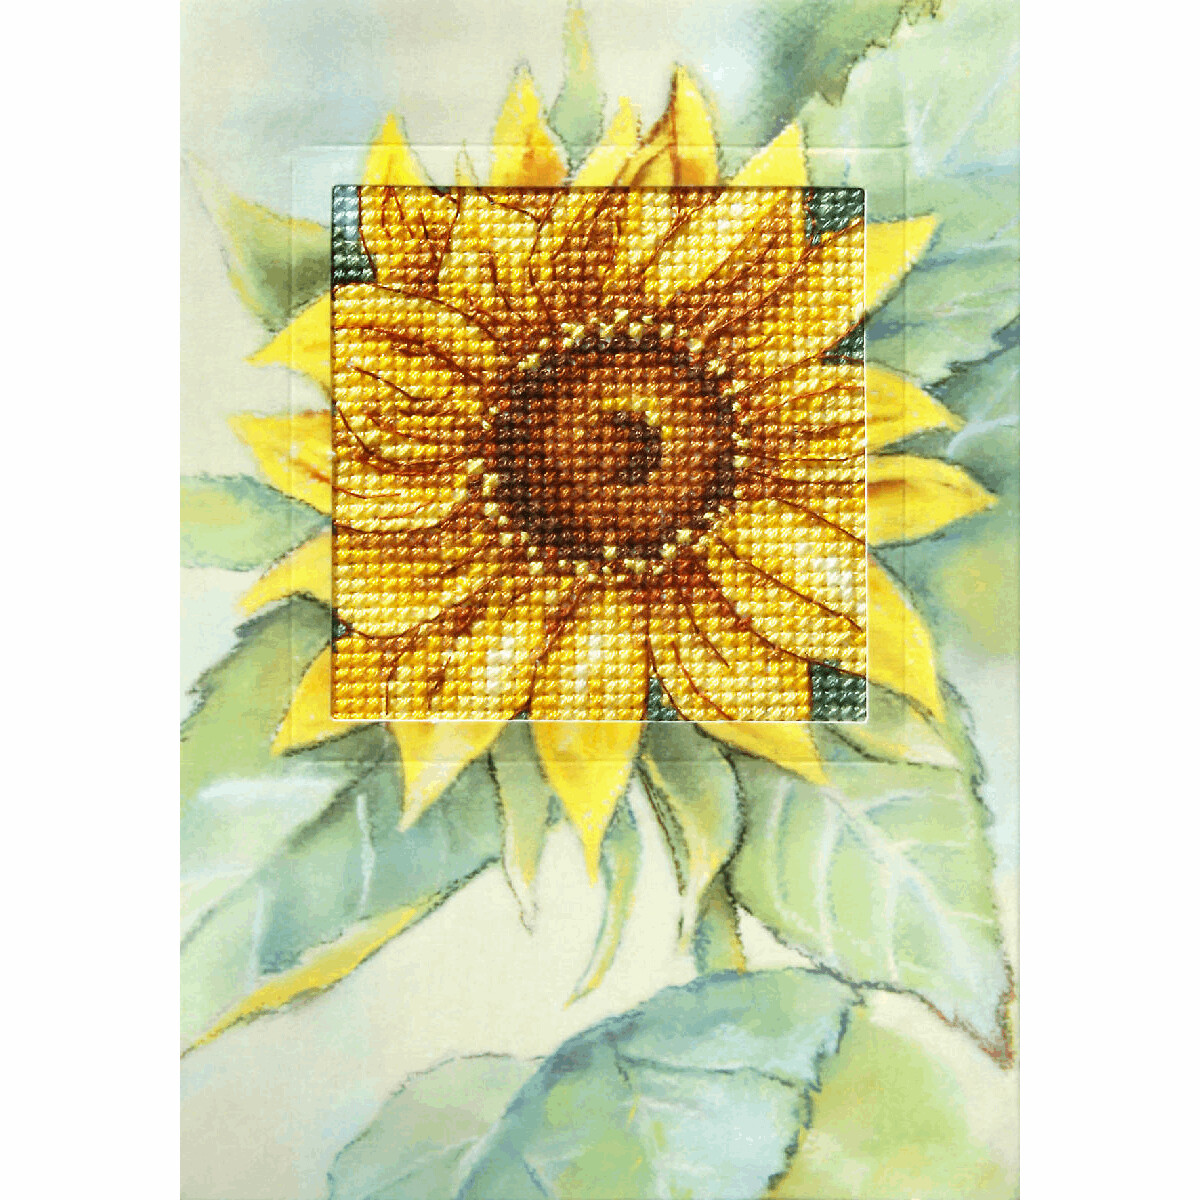 Counted Cross Stitch Kit Greetings Card: Sunflower